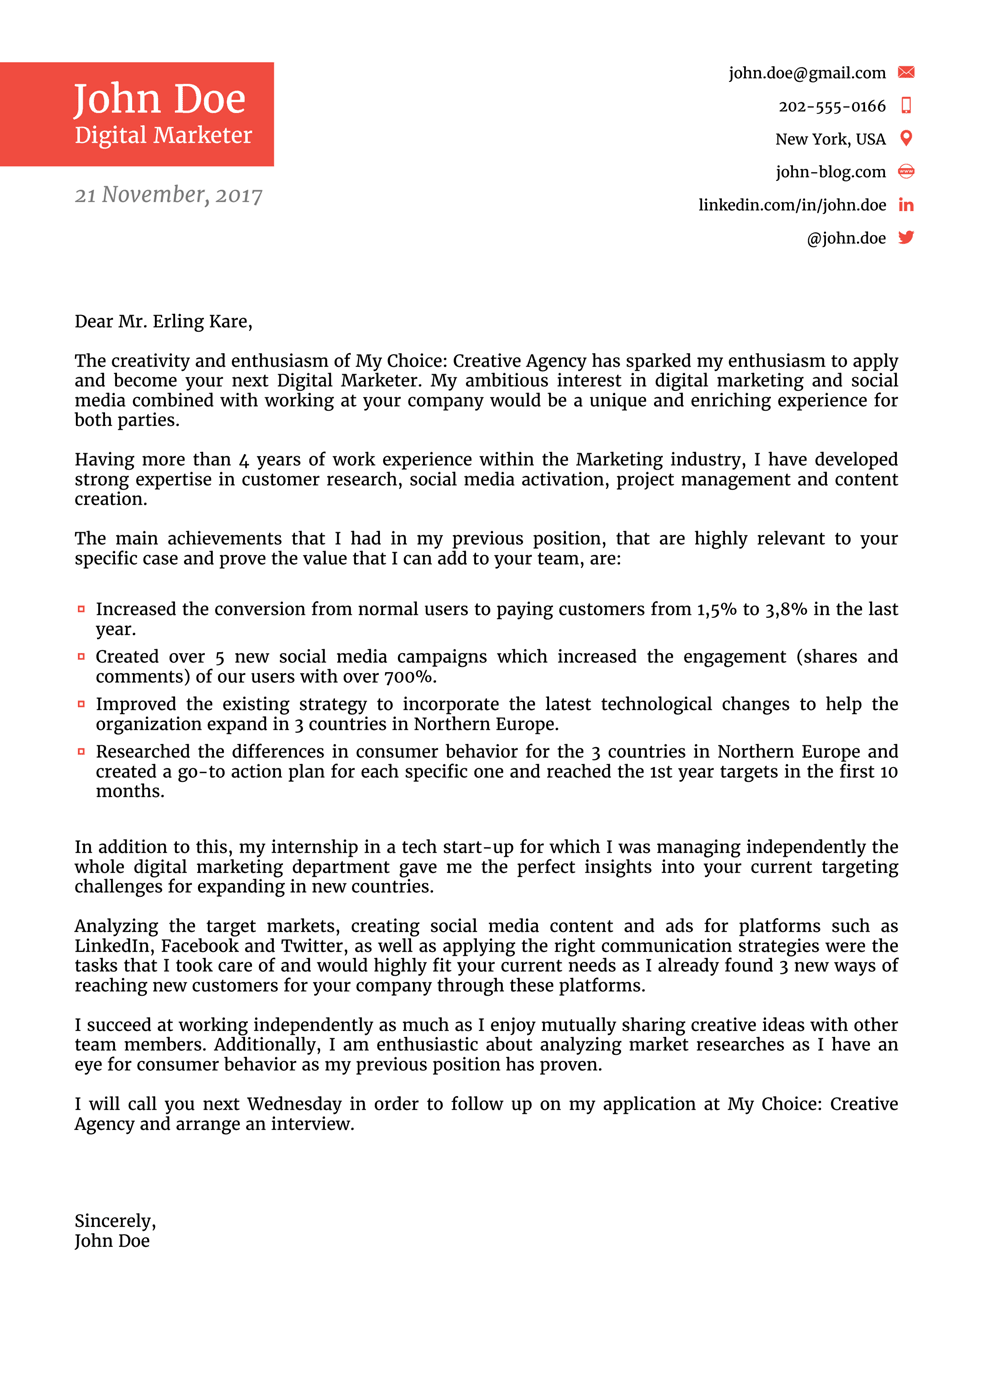 Cover Letter For Job In United Nations, Functional Cover Letter Template, Cover Letter For Job In United Nations